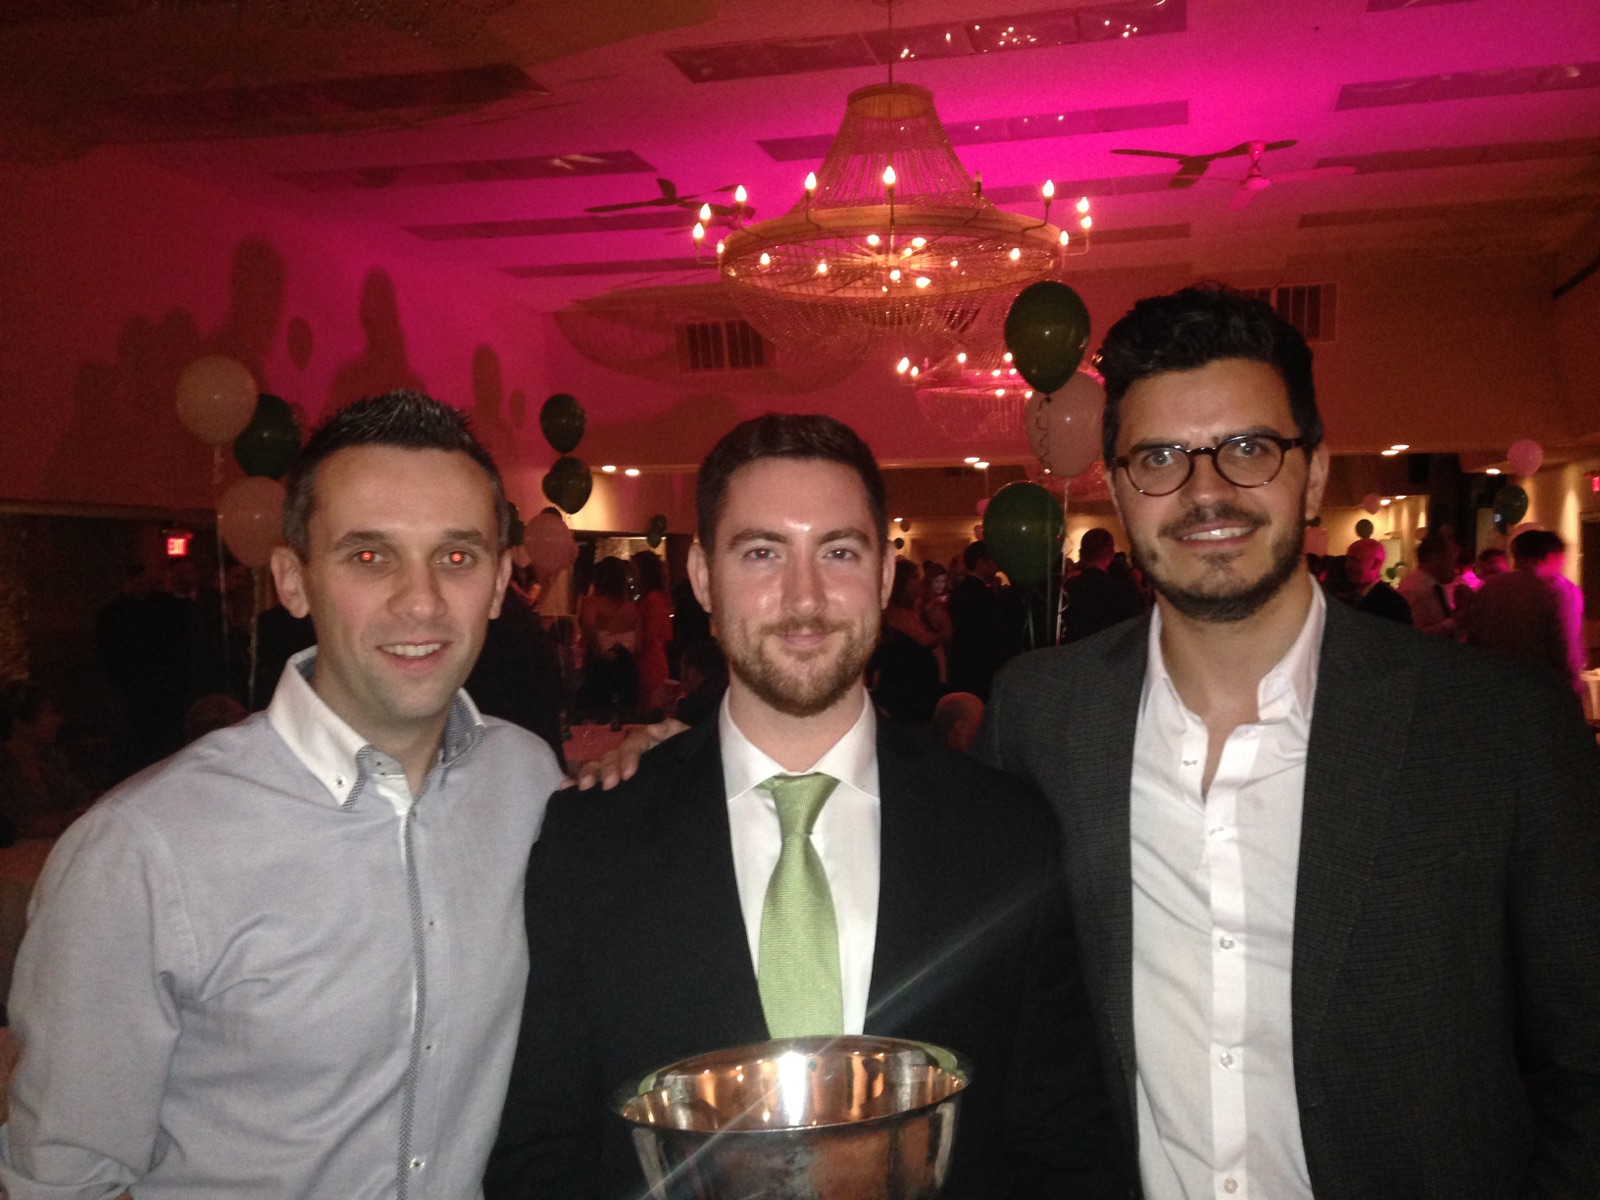 Toronto Gaels at the Toronto GAA 2015 Banquet - 1.jpg